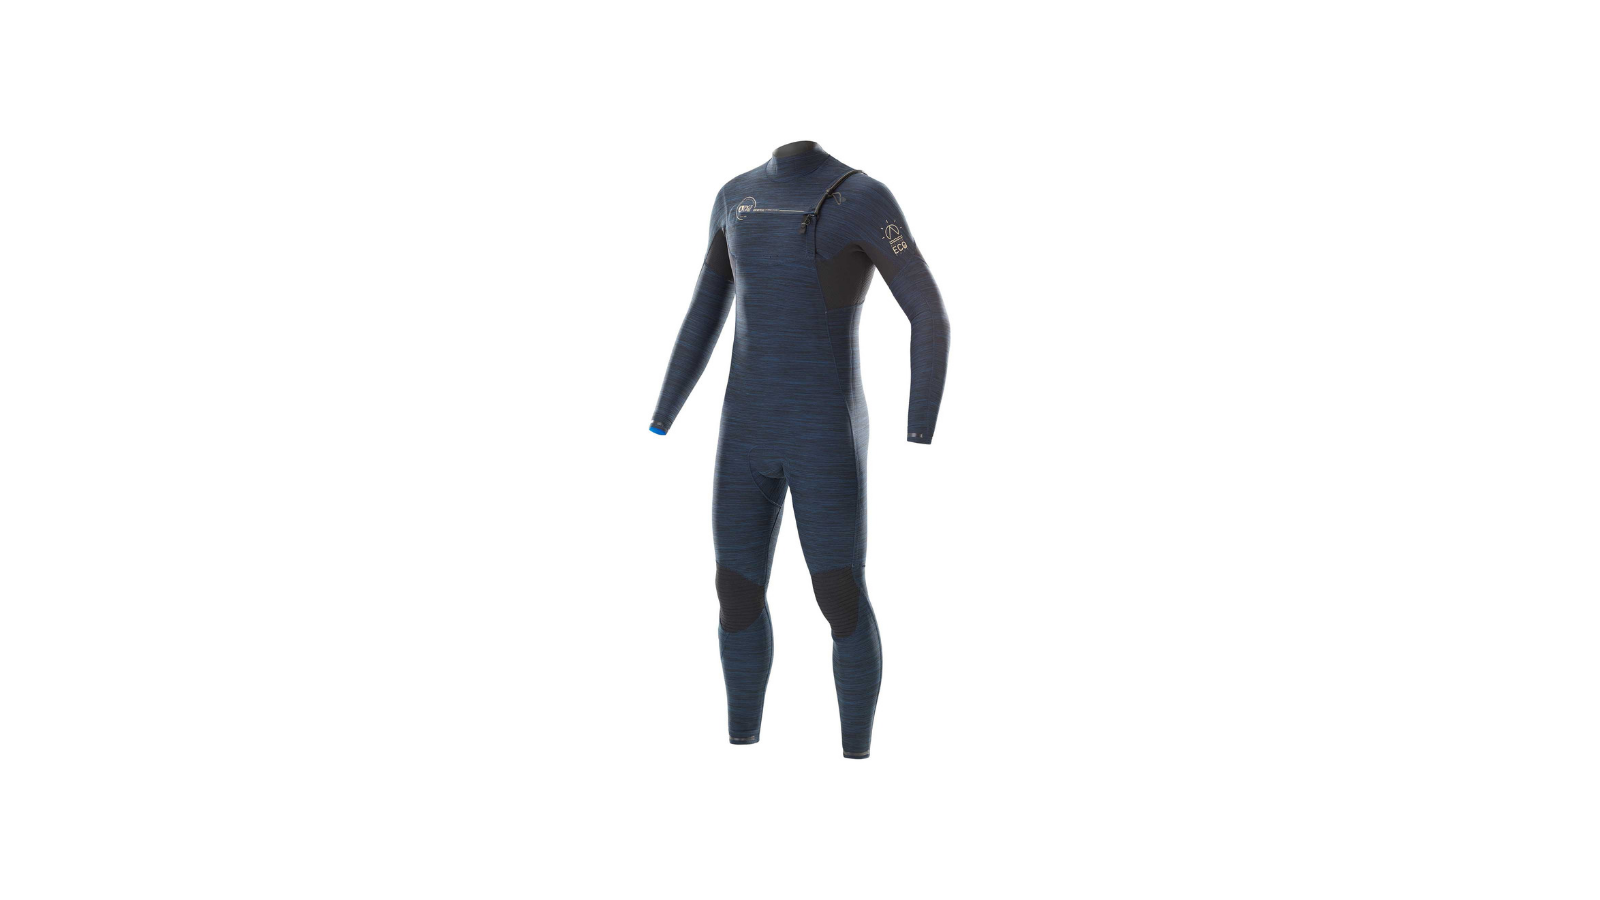 PICTURE ORGANIC CLOTHING 2 EQUATION3.2 WETSUIT